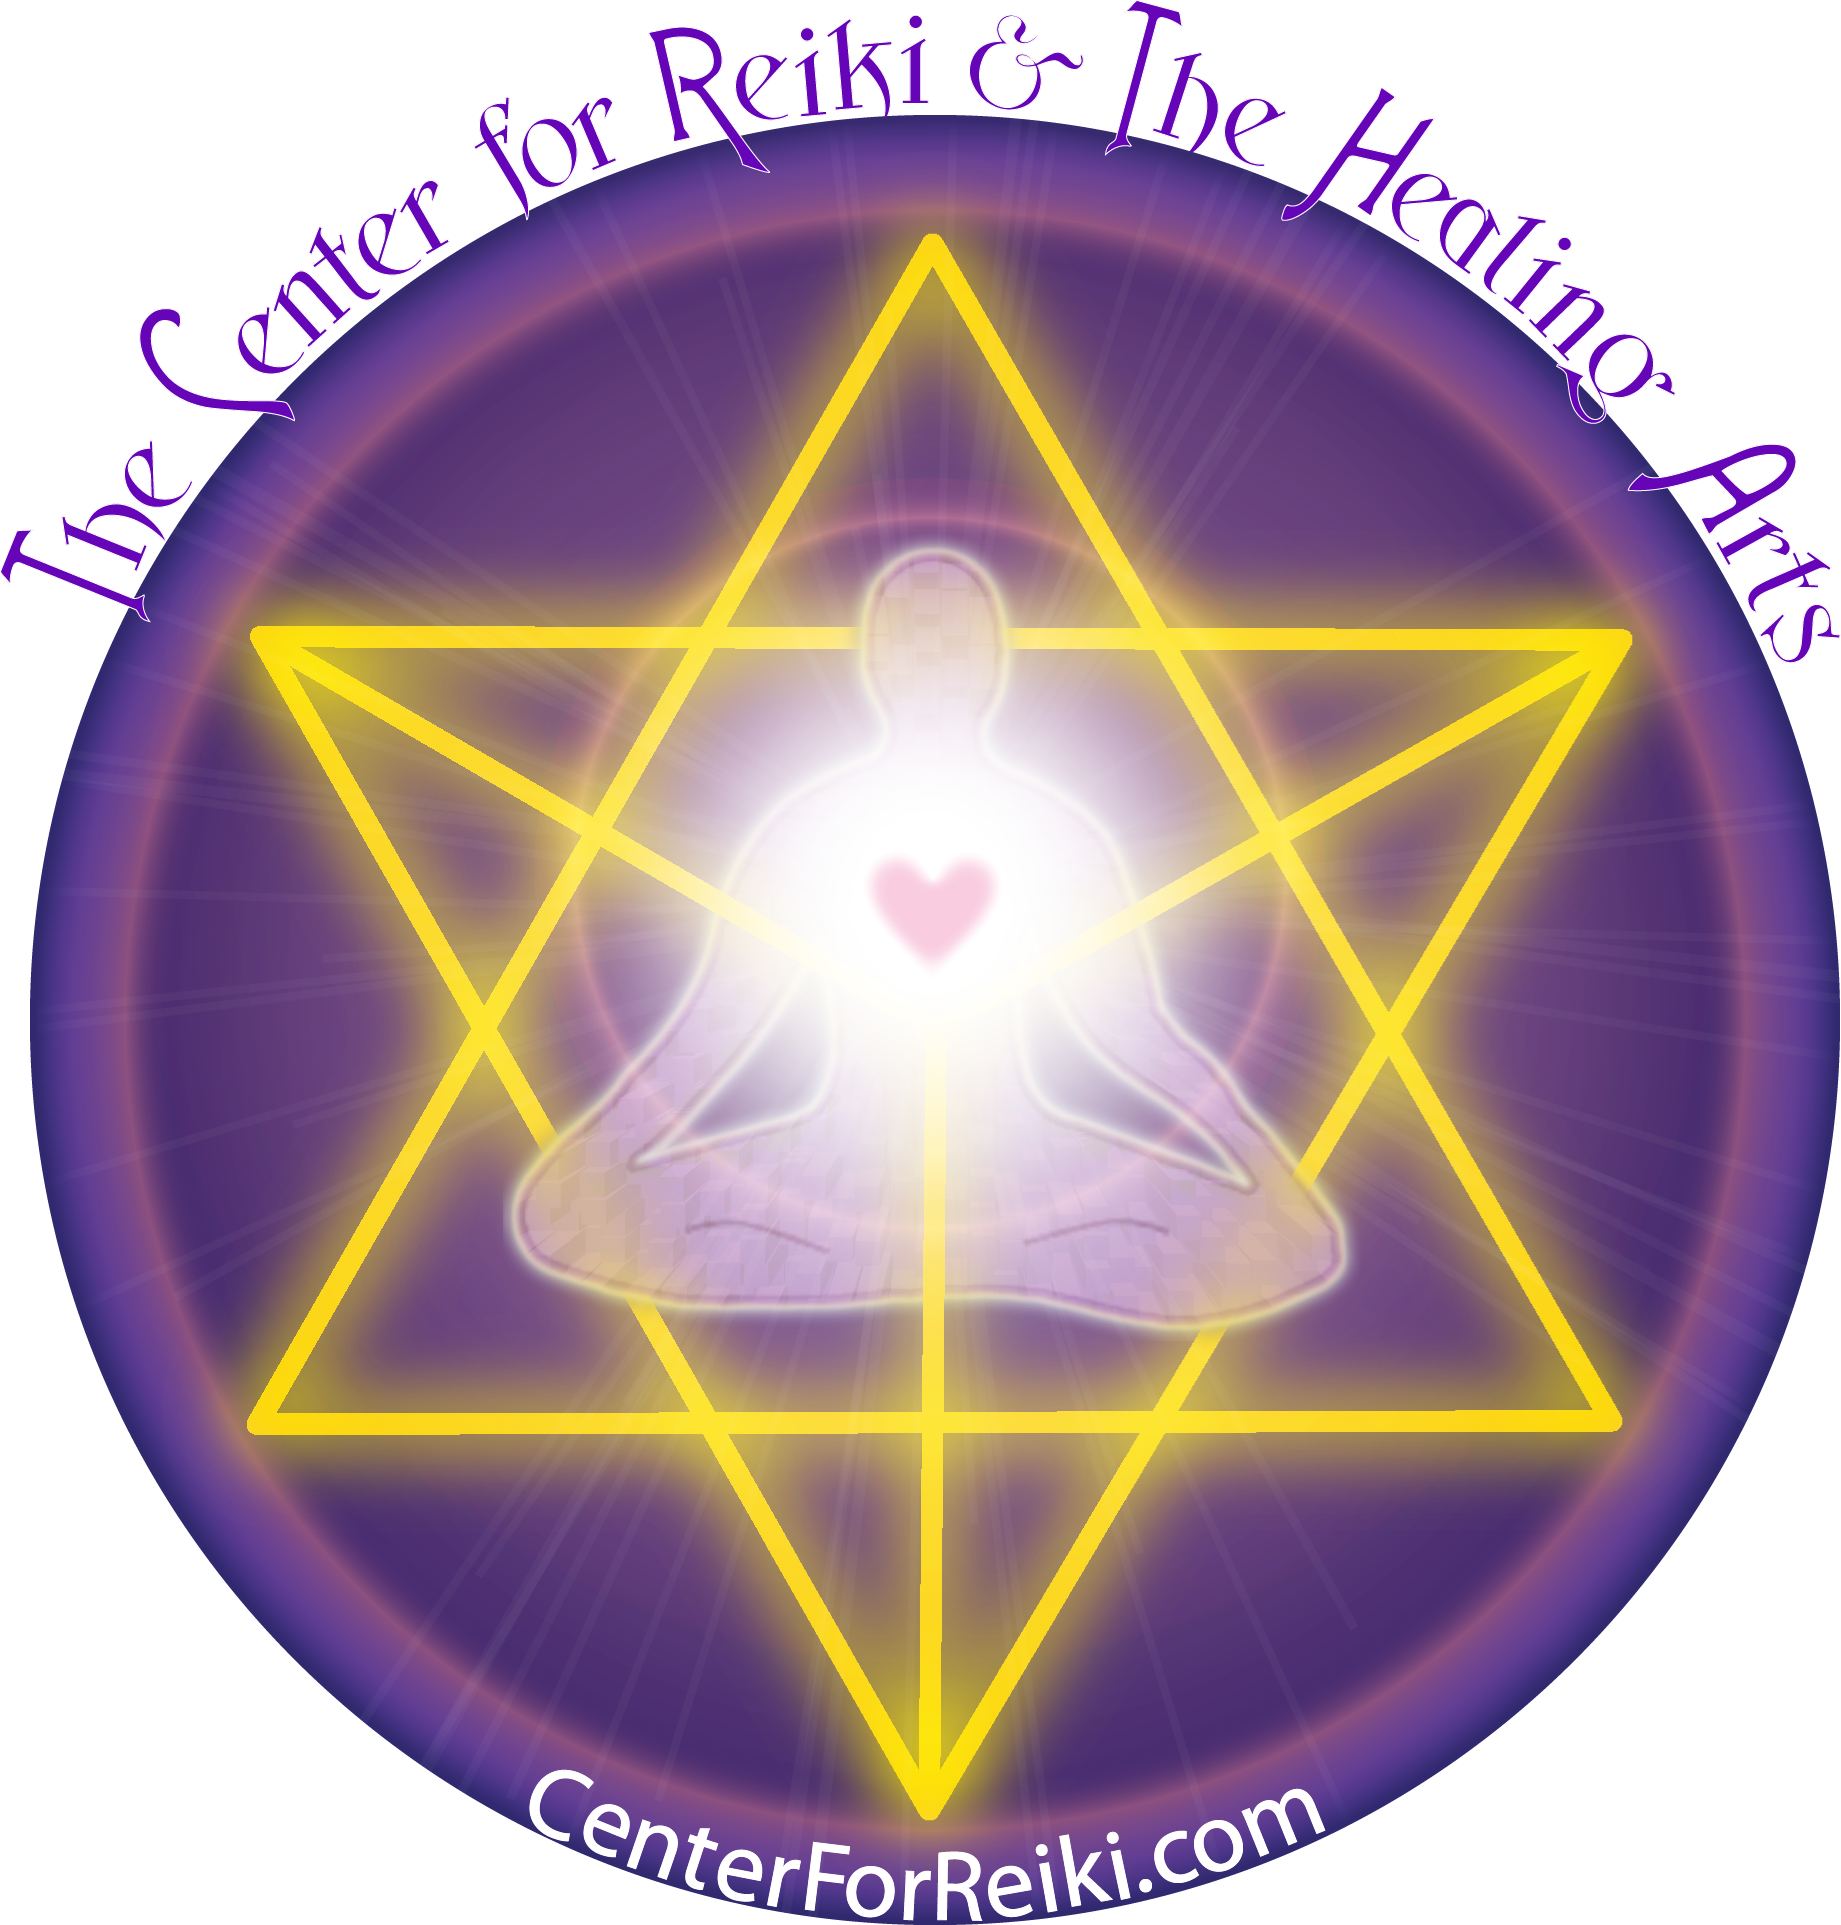 Center For Reiki and the Healing Arts